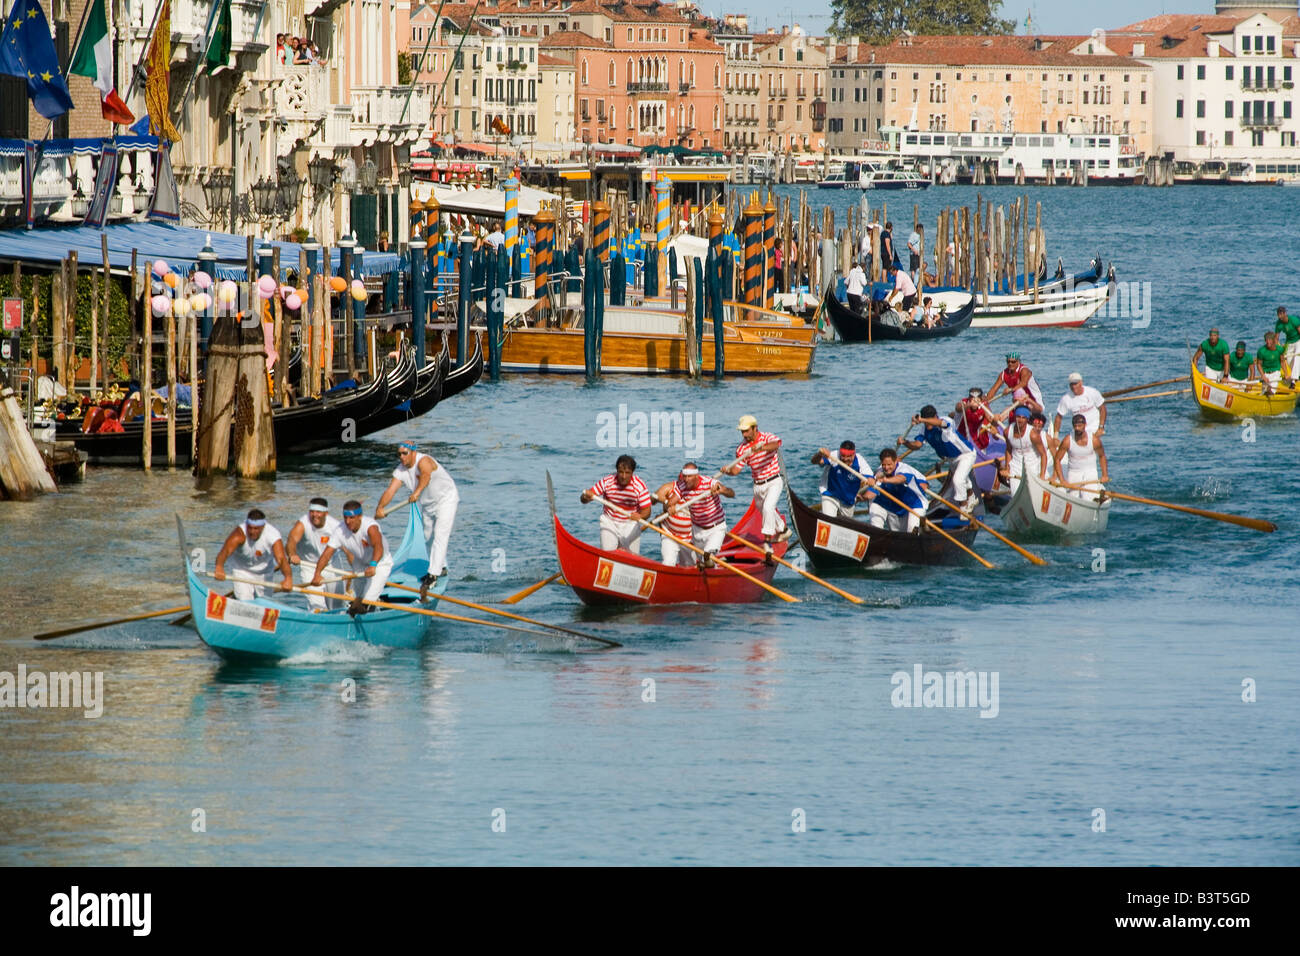 Teams race along the Grand Canal in Venice for the Historical Regatta which takes place each September - Stock Image